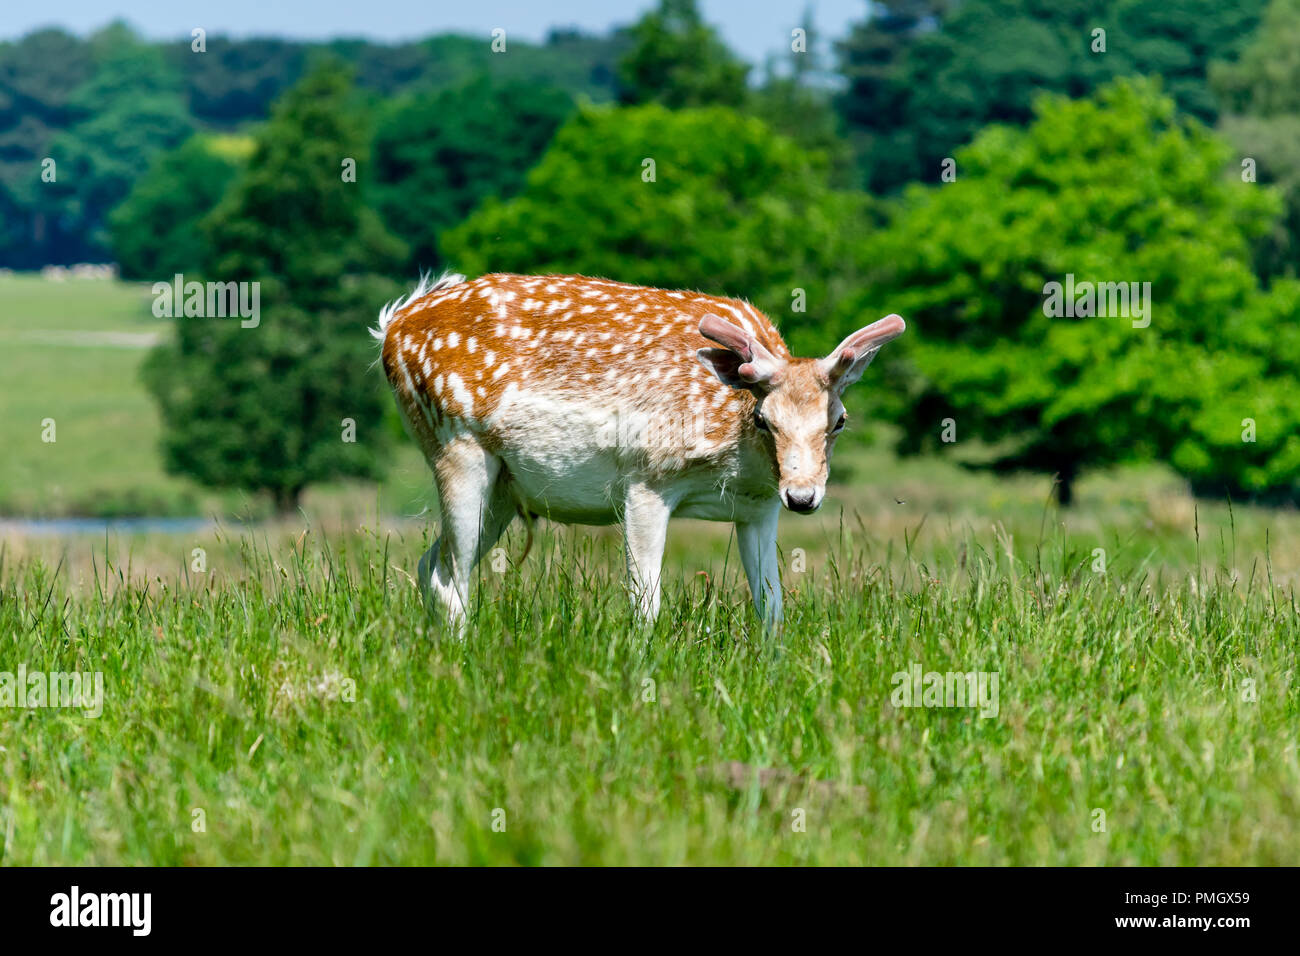 A Deer looking curiously at the camera, Tatton Park, England. - Stock Image